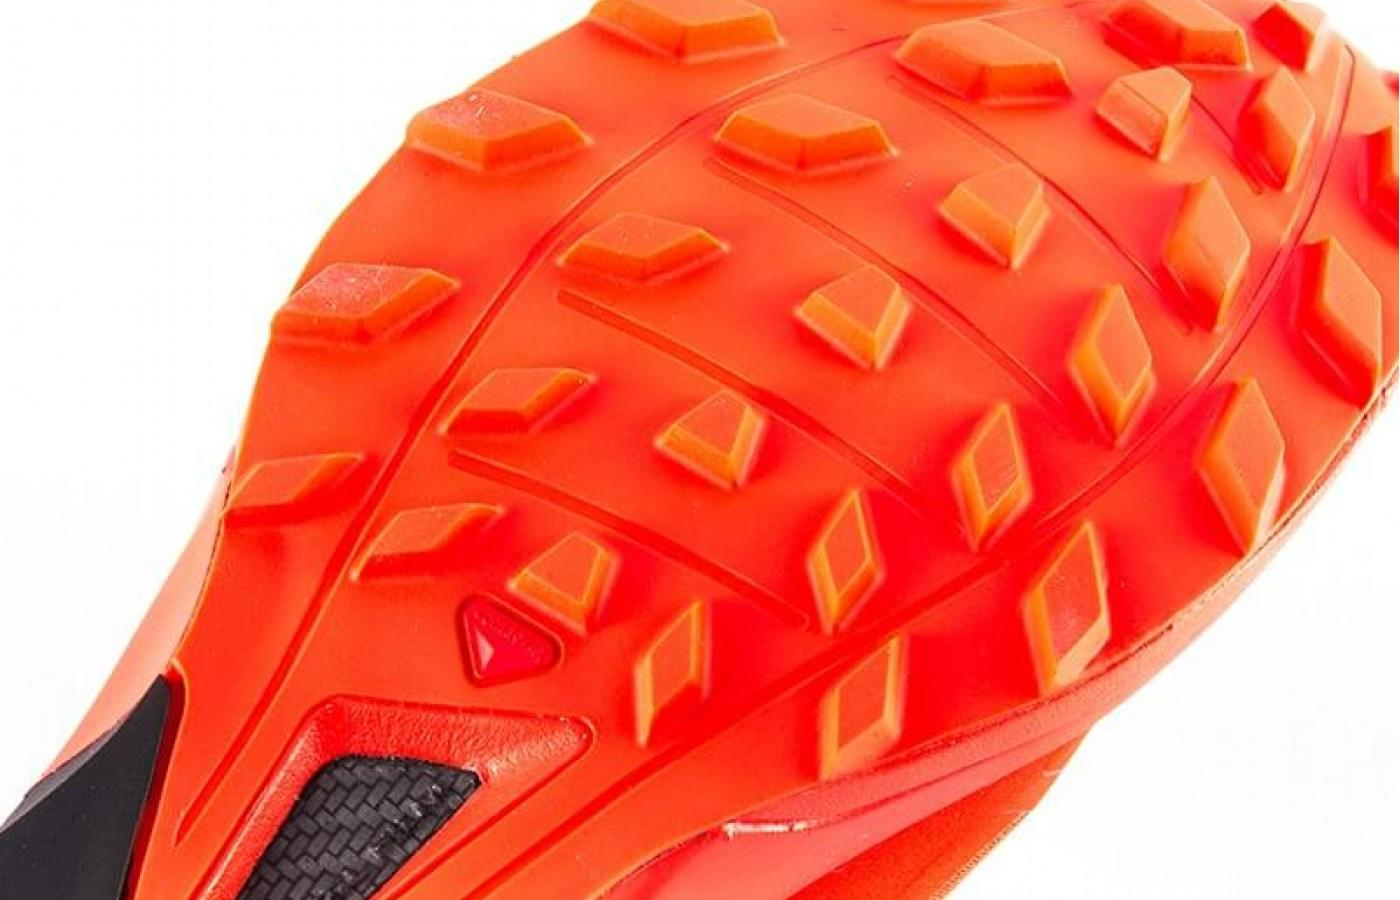 The Salomon S-Lab Sense 6 SG has a Contagrip outsole